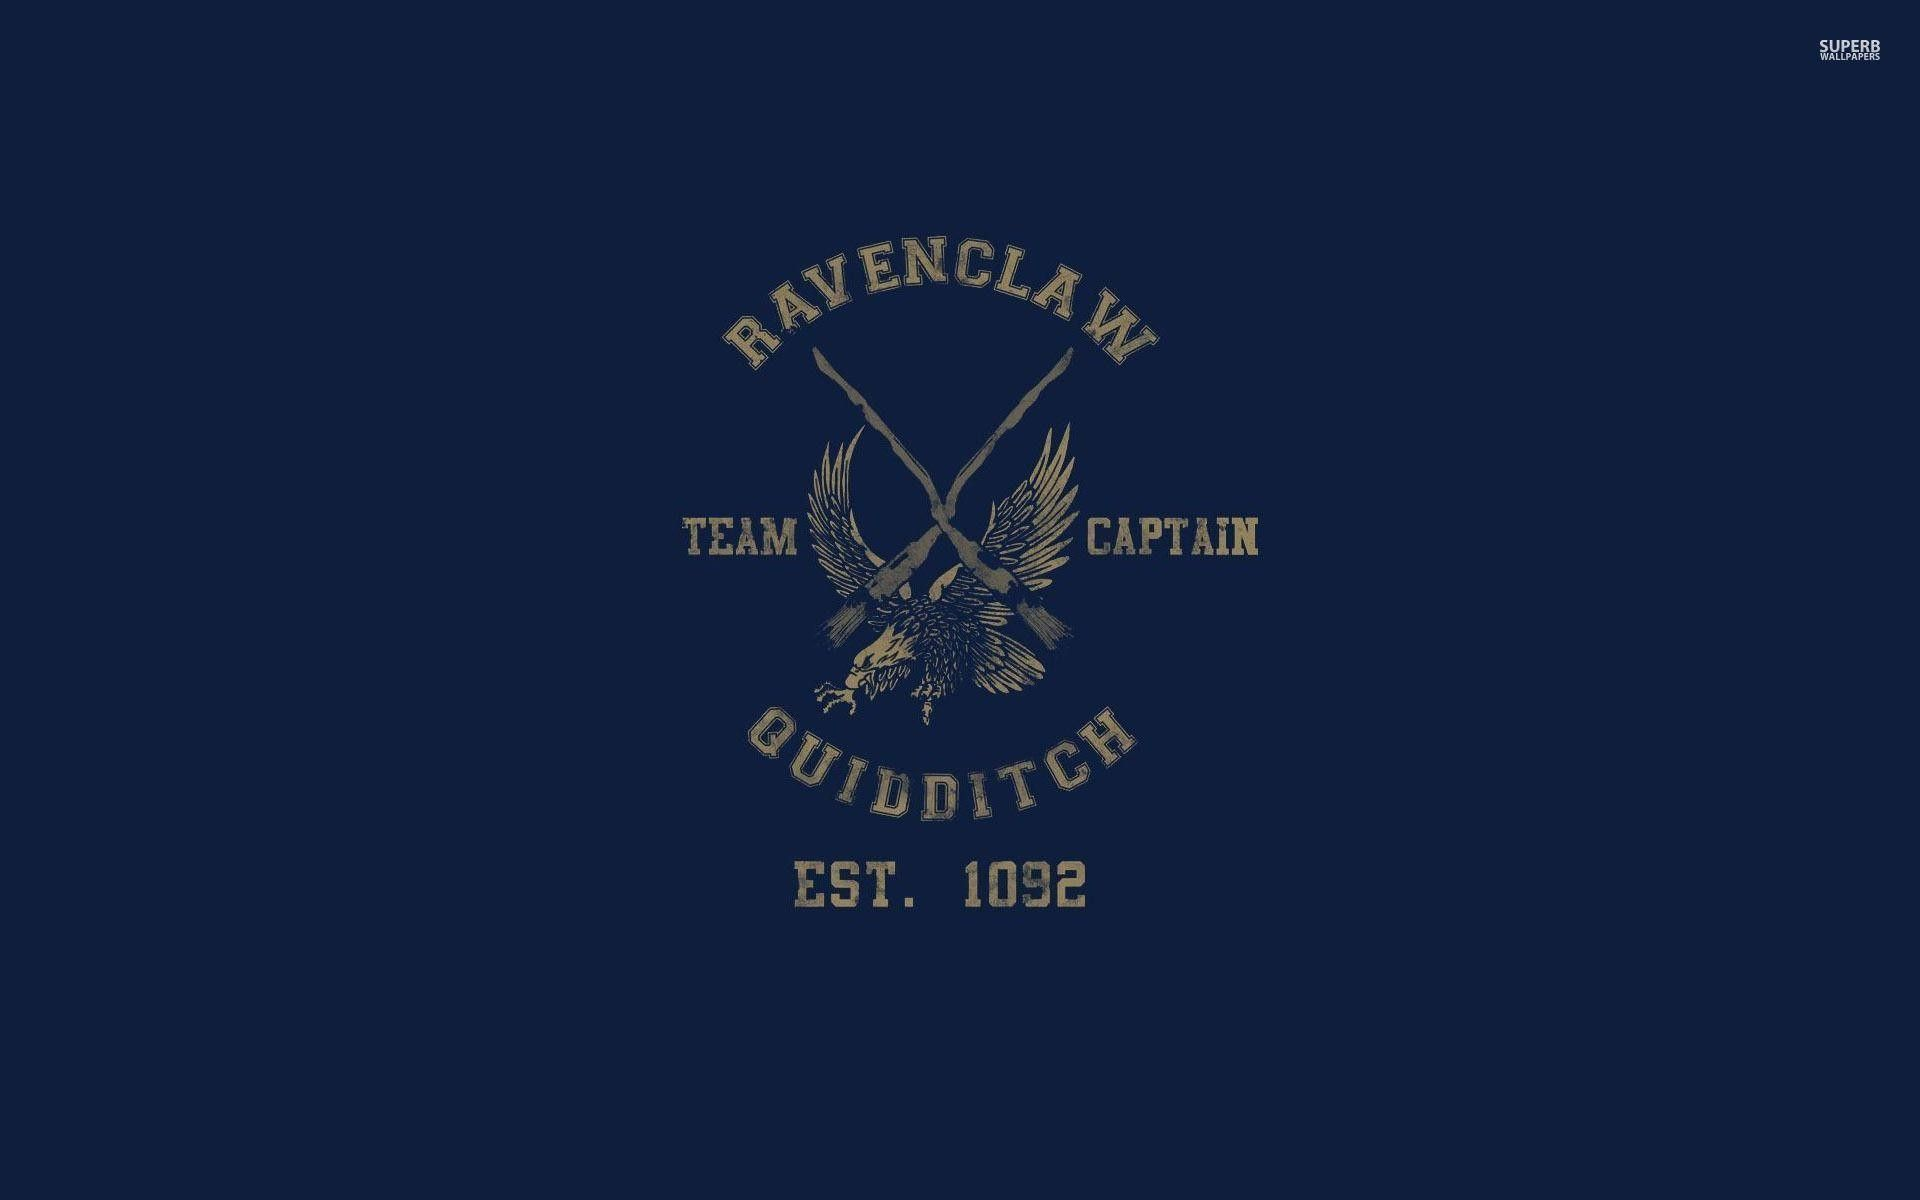 1920x1200 Ravenclaw Quidditch Team Harry Potter Wallpaper Vector Sfondi Harry Potter Fandom